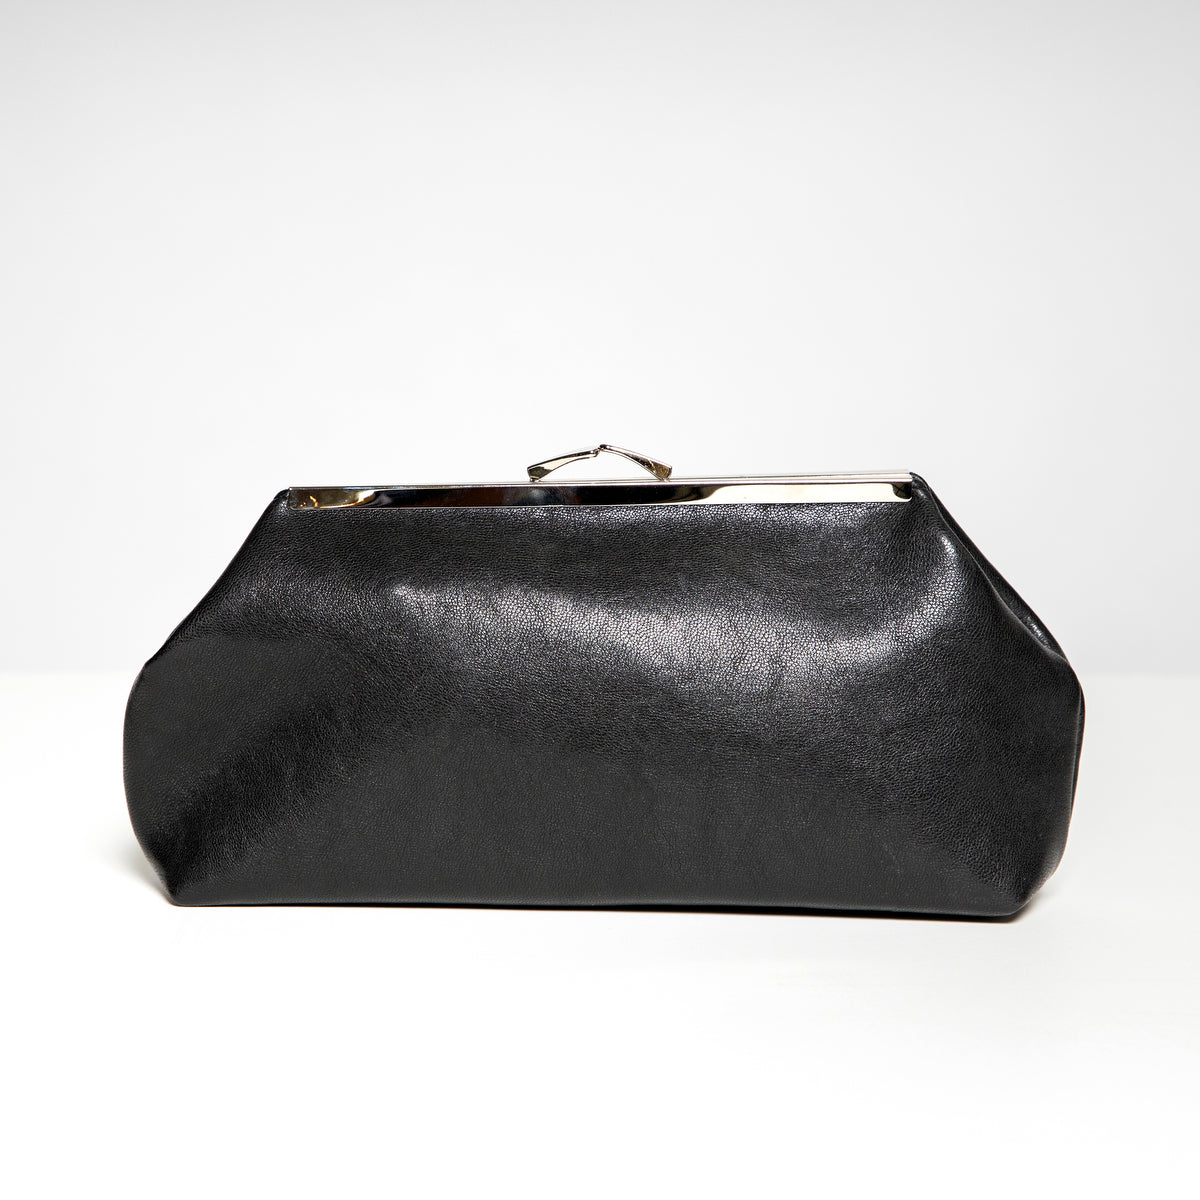 Jeanie Joe Veronica Bag in Black Faux Leather